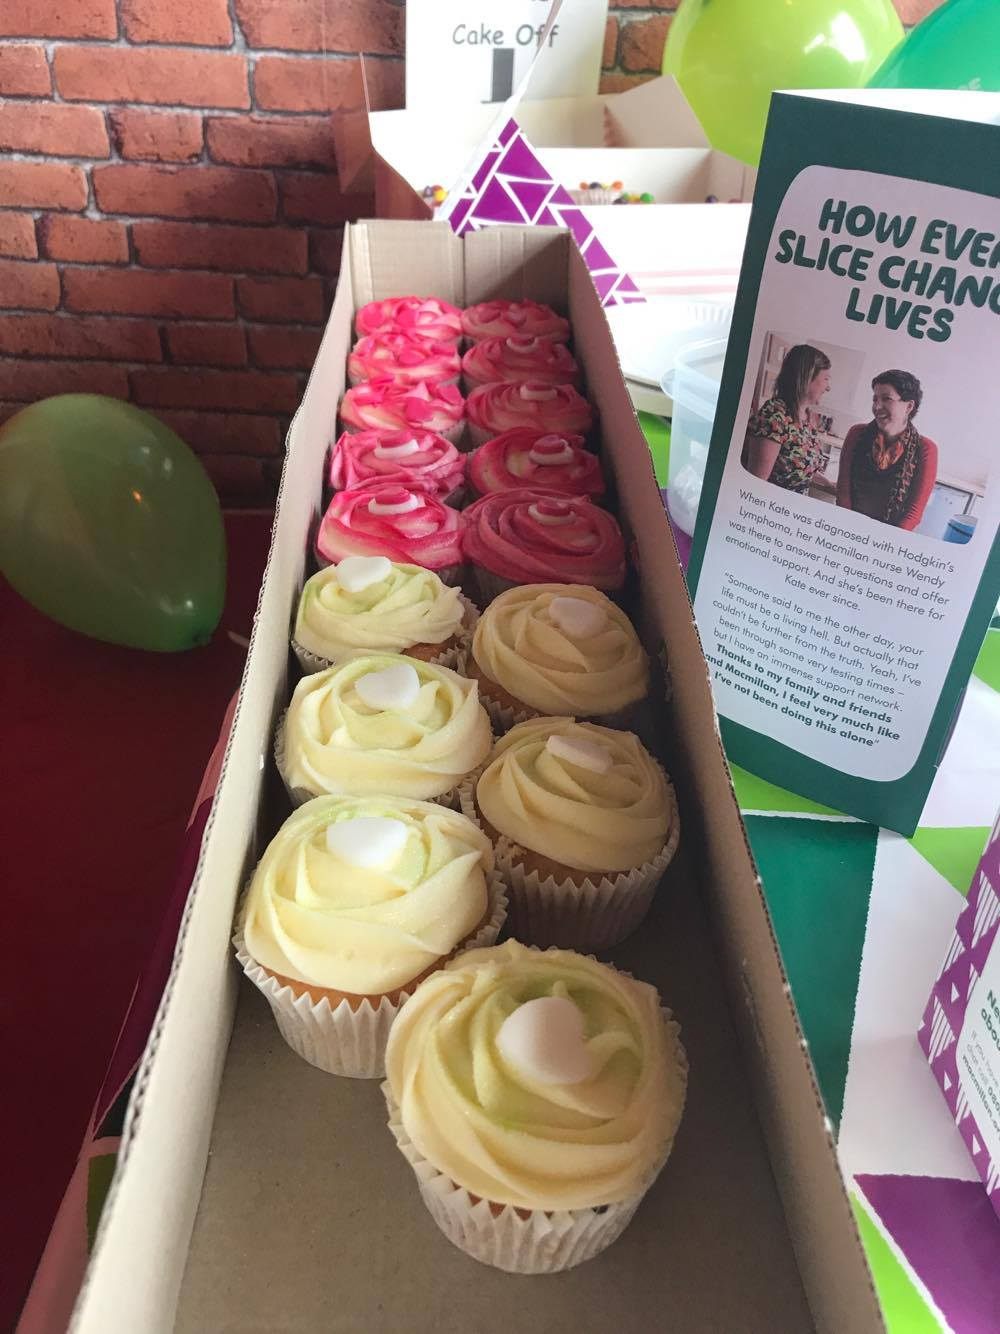 VP Cake Off Lemon & Strawberry Cupcakes | Macmillan Coffee Morning 2017